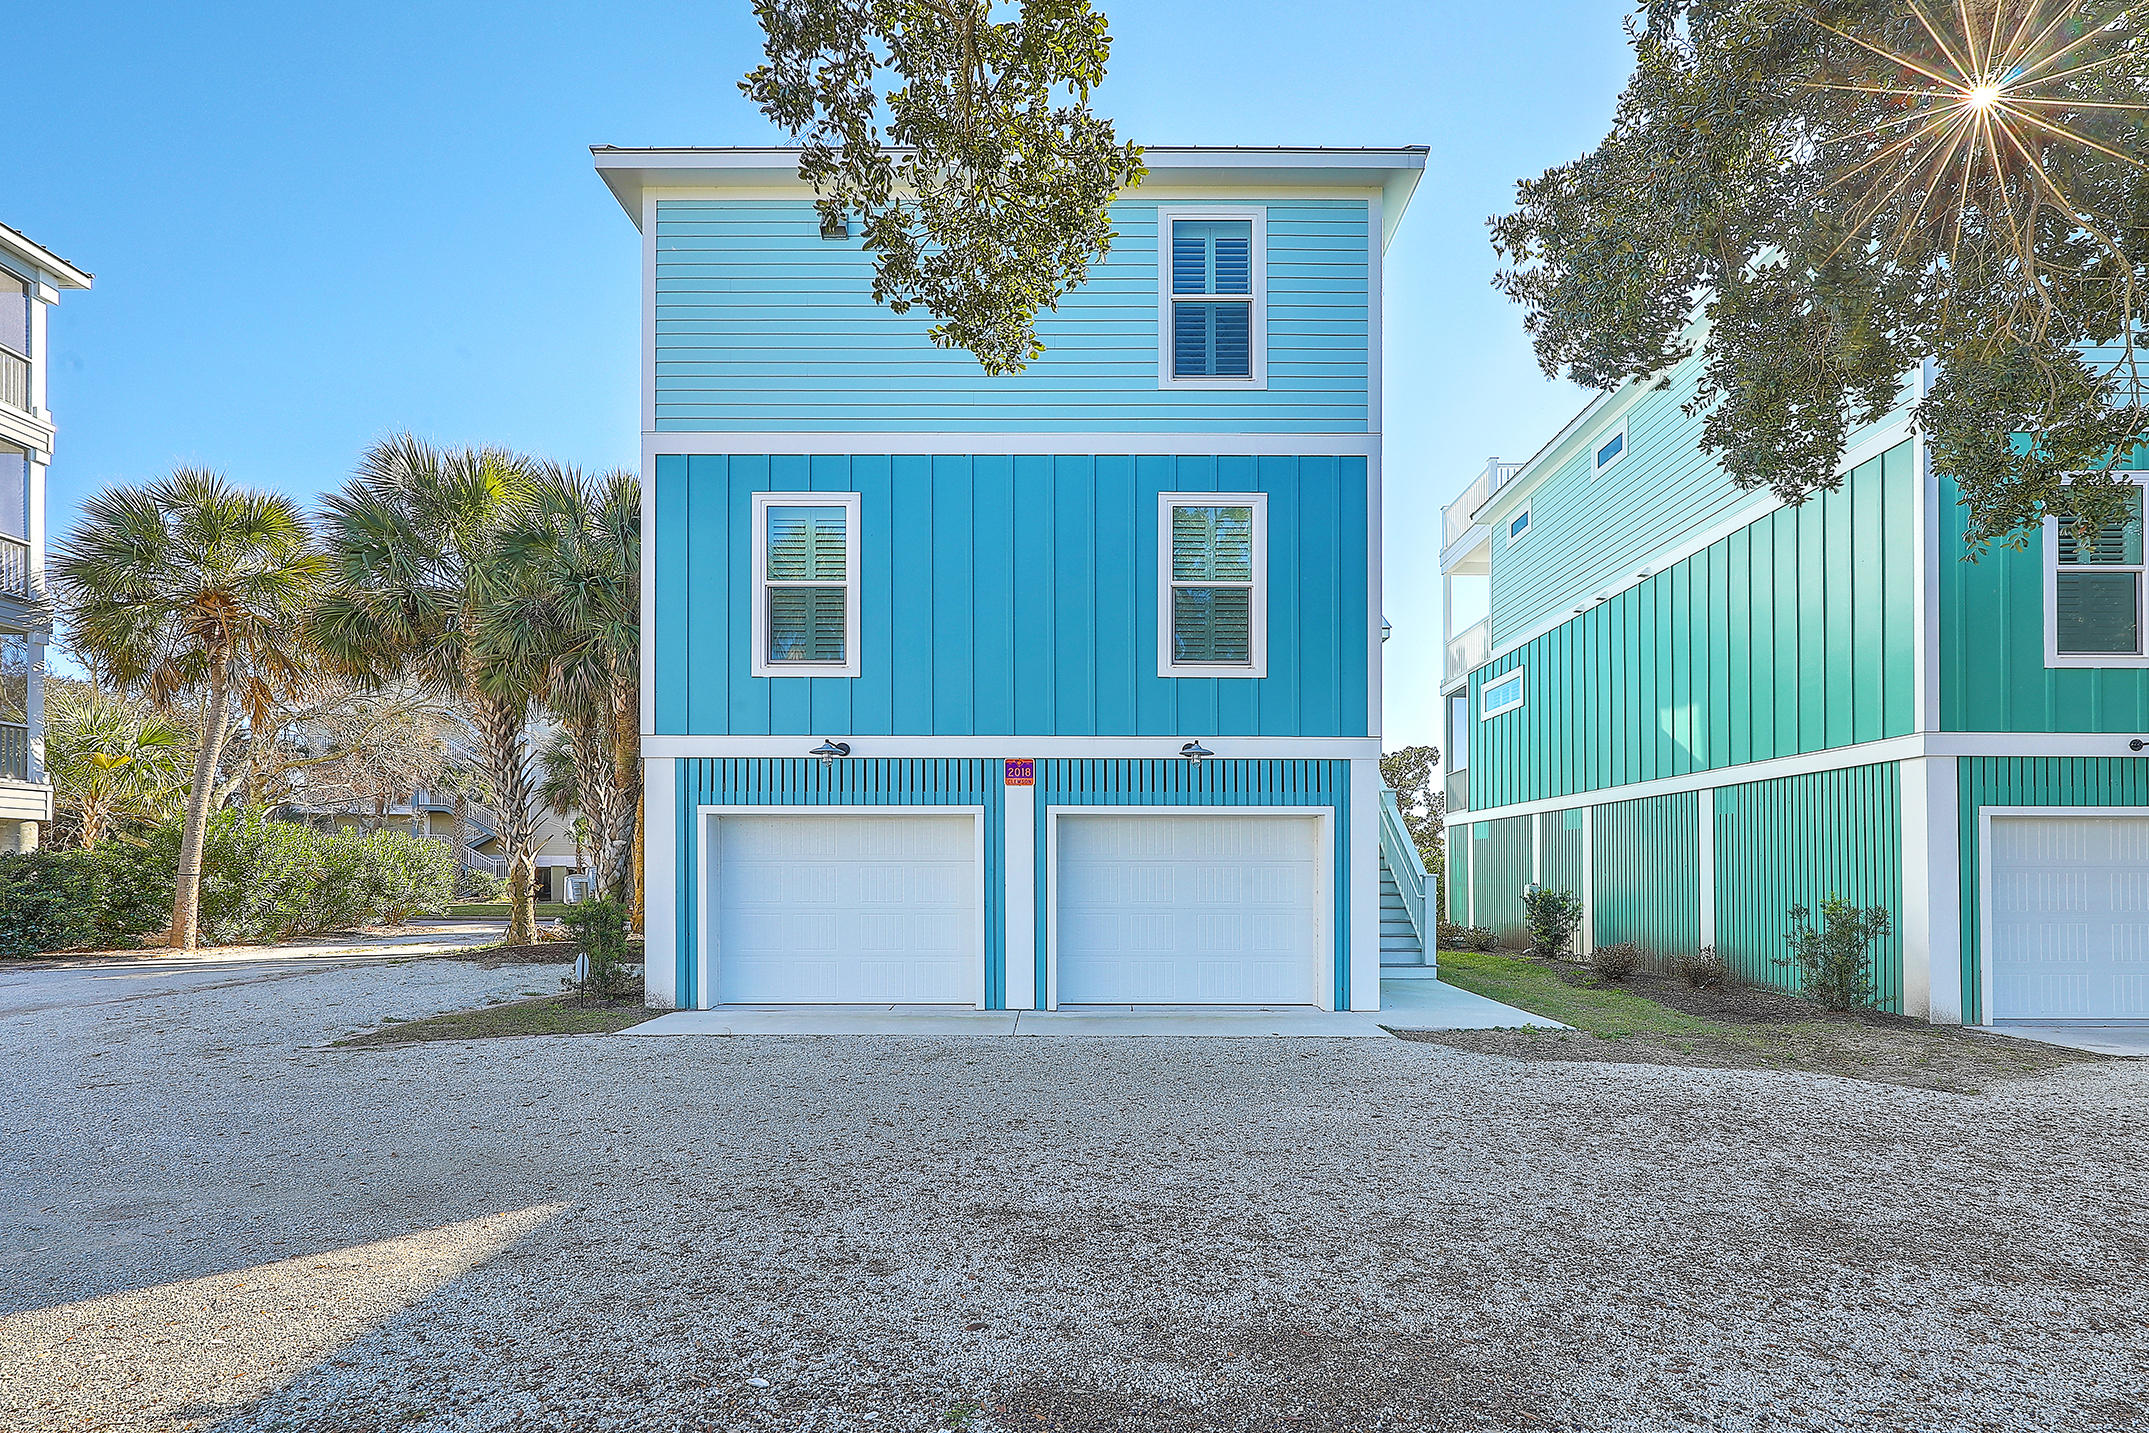 Mariners Cay Homes For Sale - 1002 Mariners Cay, Folly Beach, SC - 27